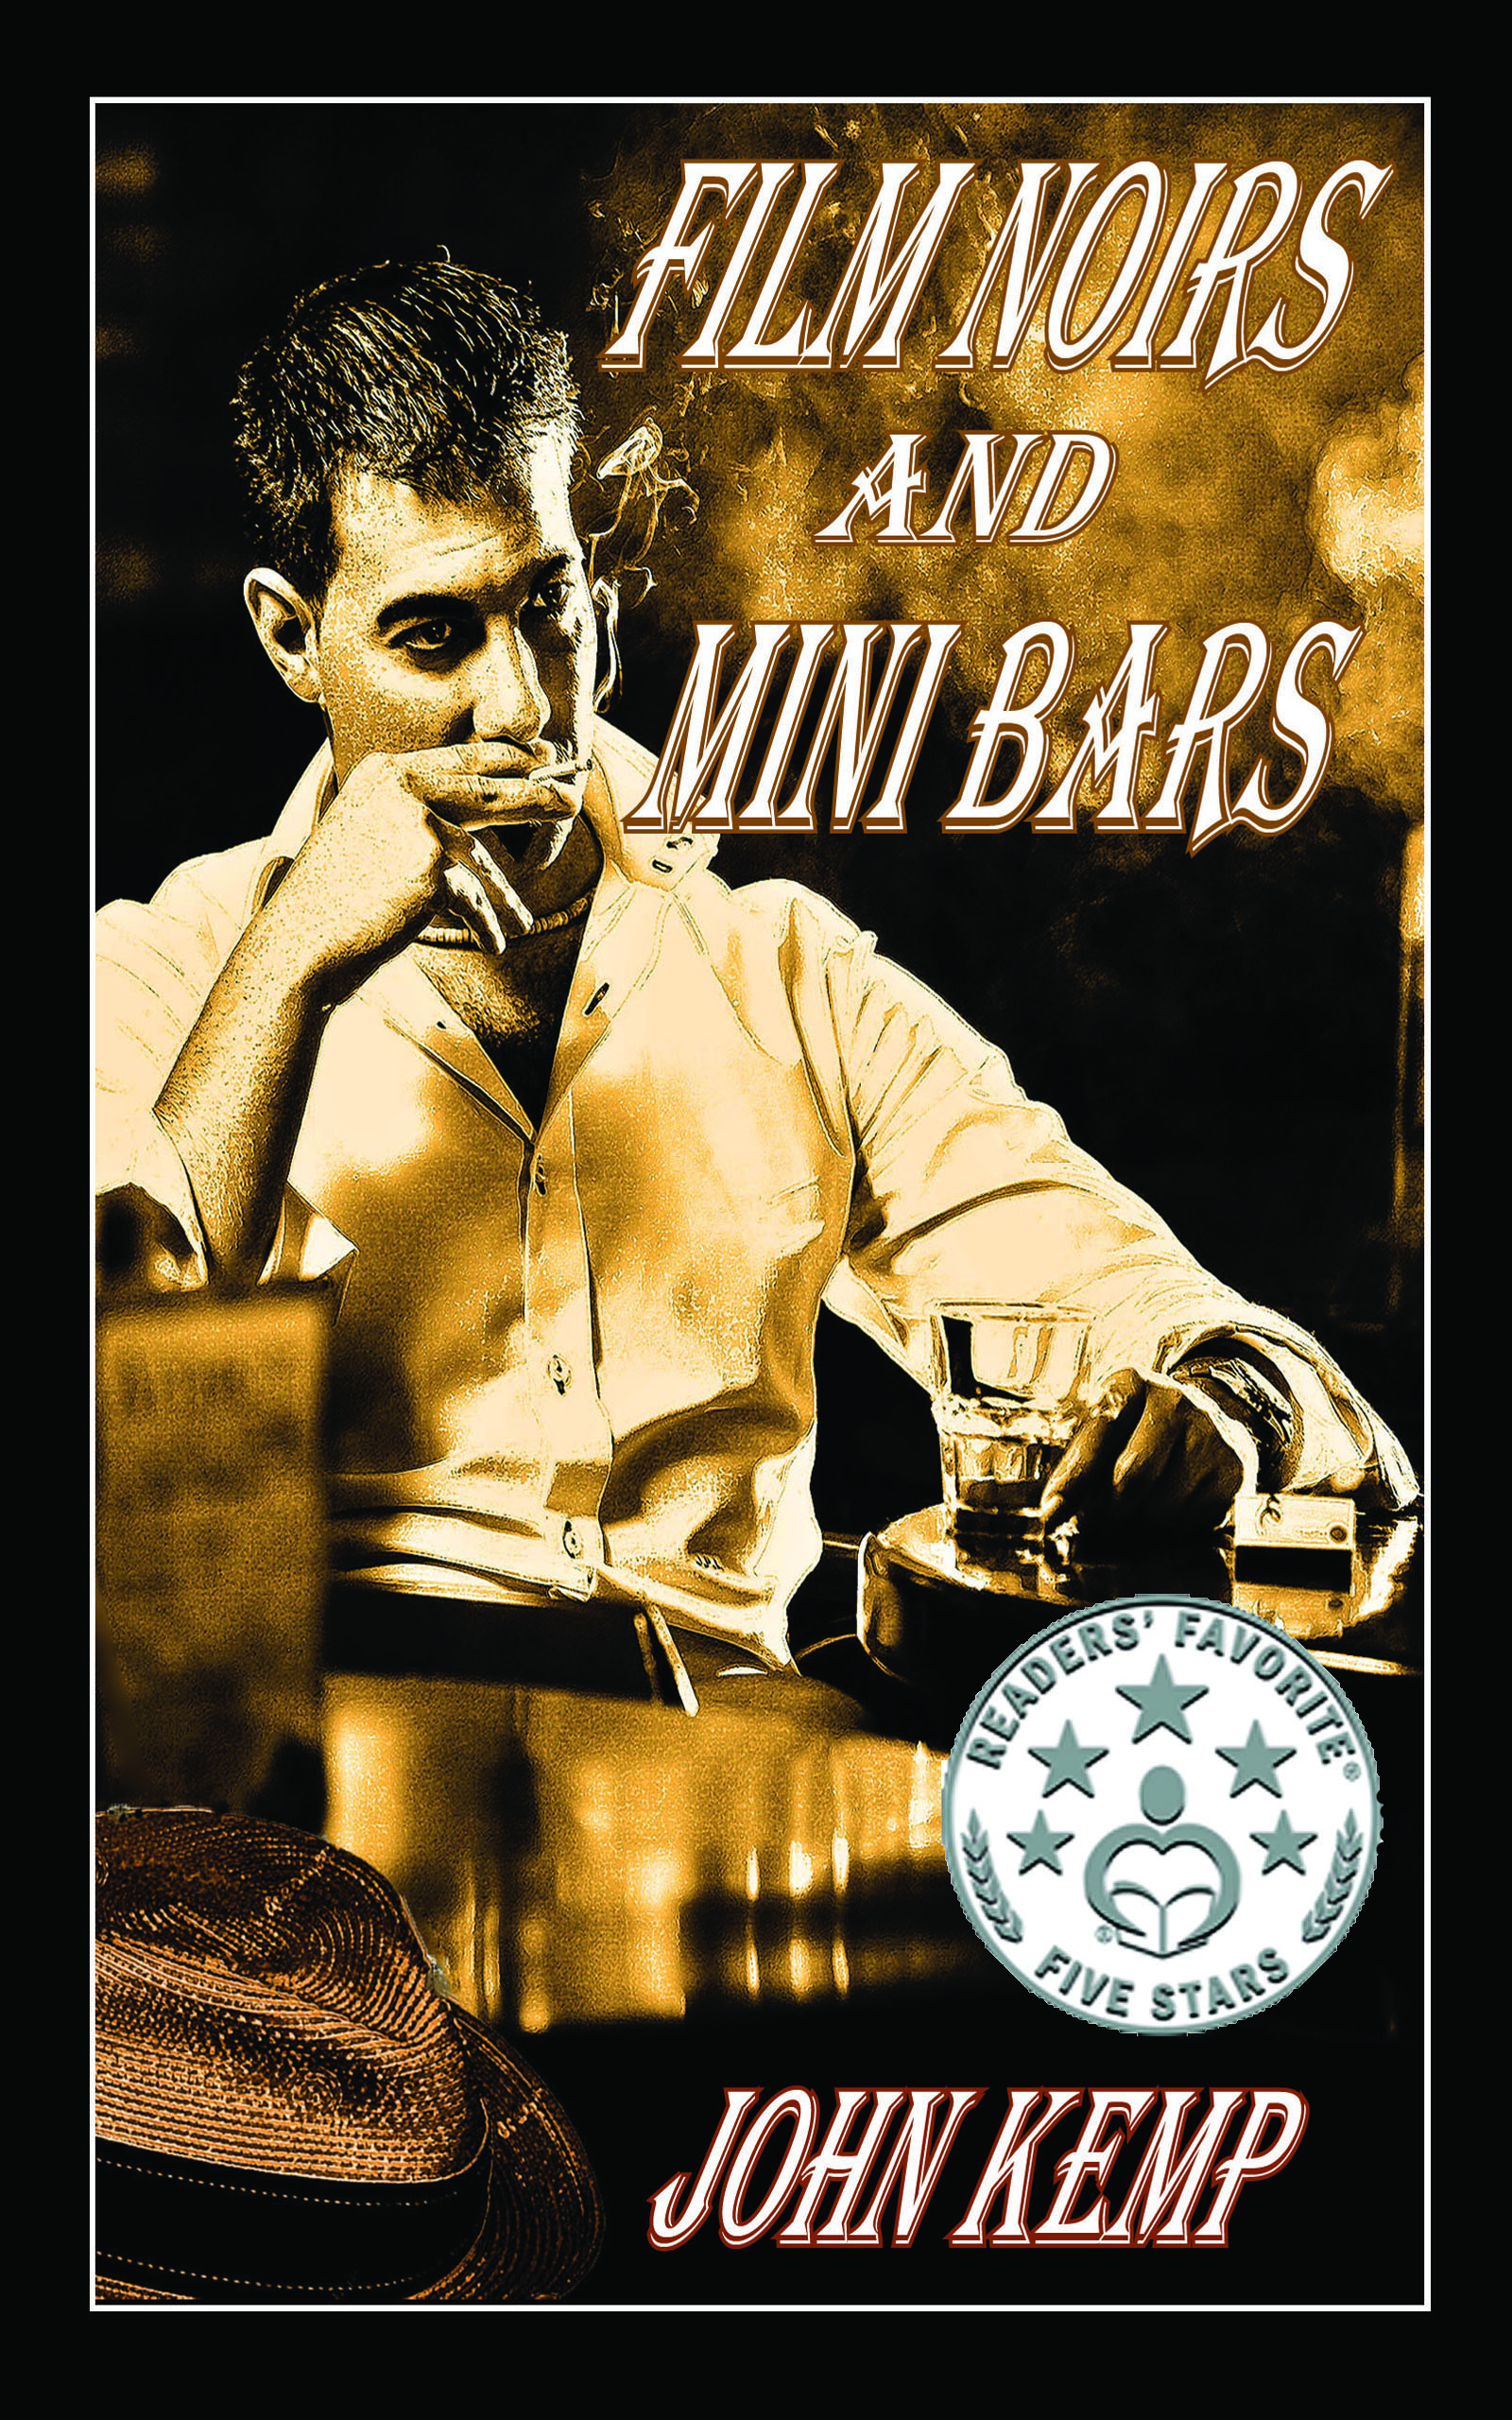 Film_Noirs_and_Mini_Bars_book_cover